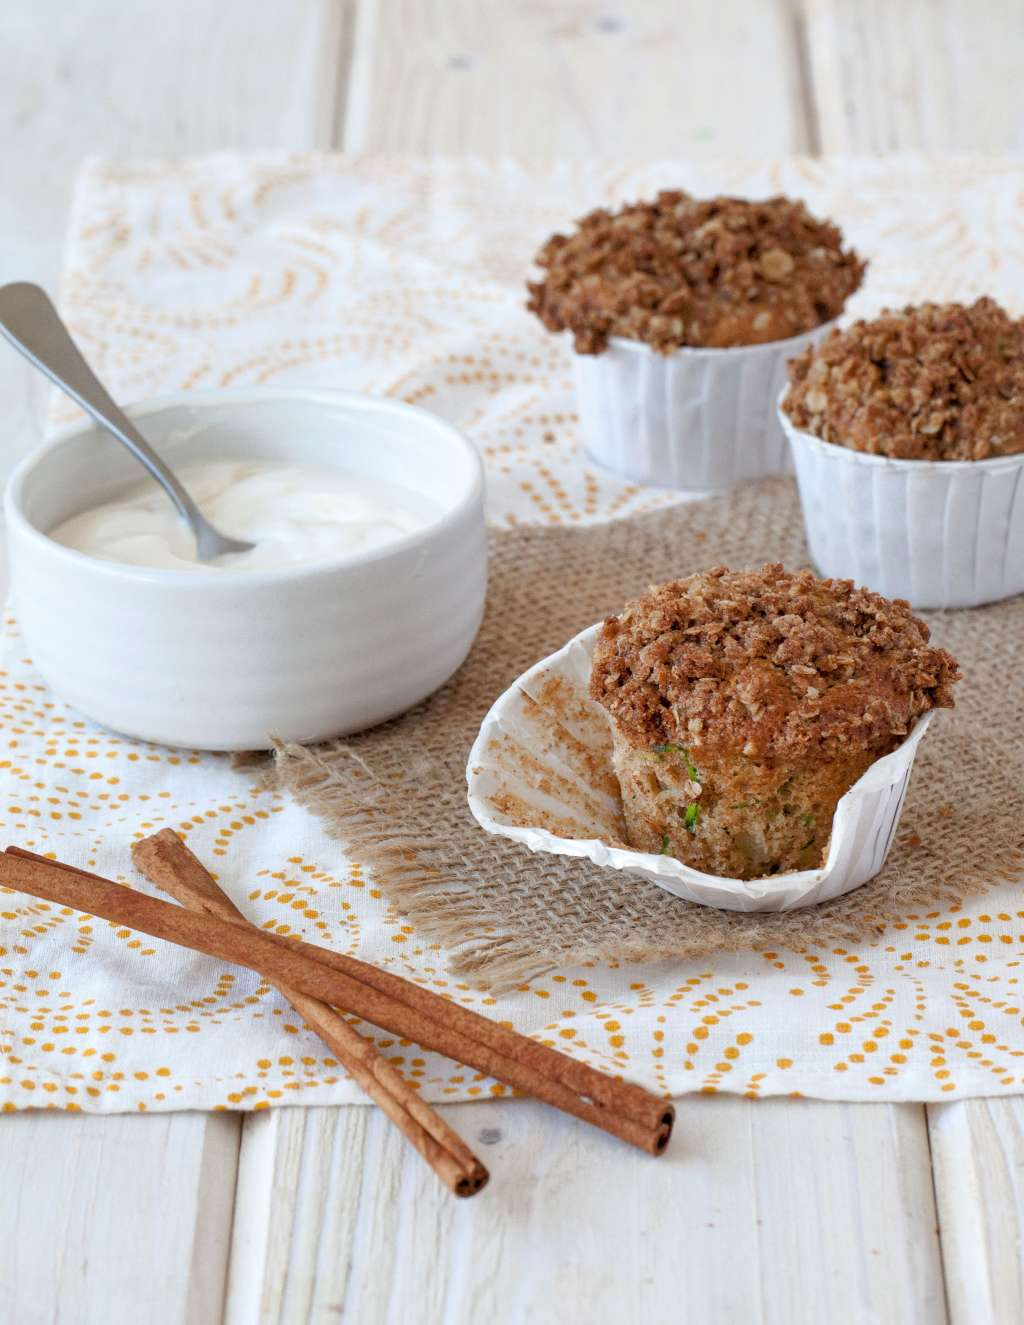 Make Apple-Zucchini Muffins for a Quick Breakfast